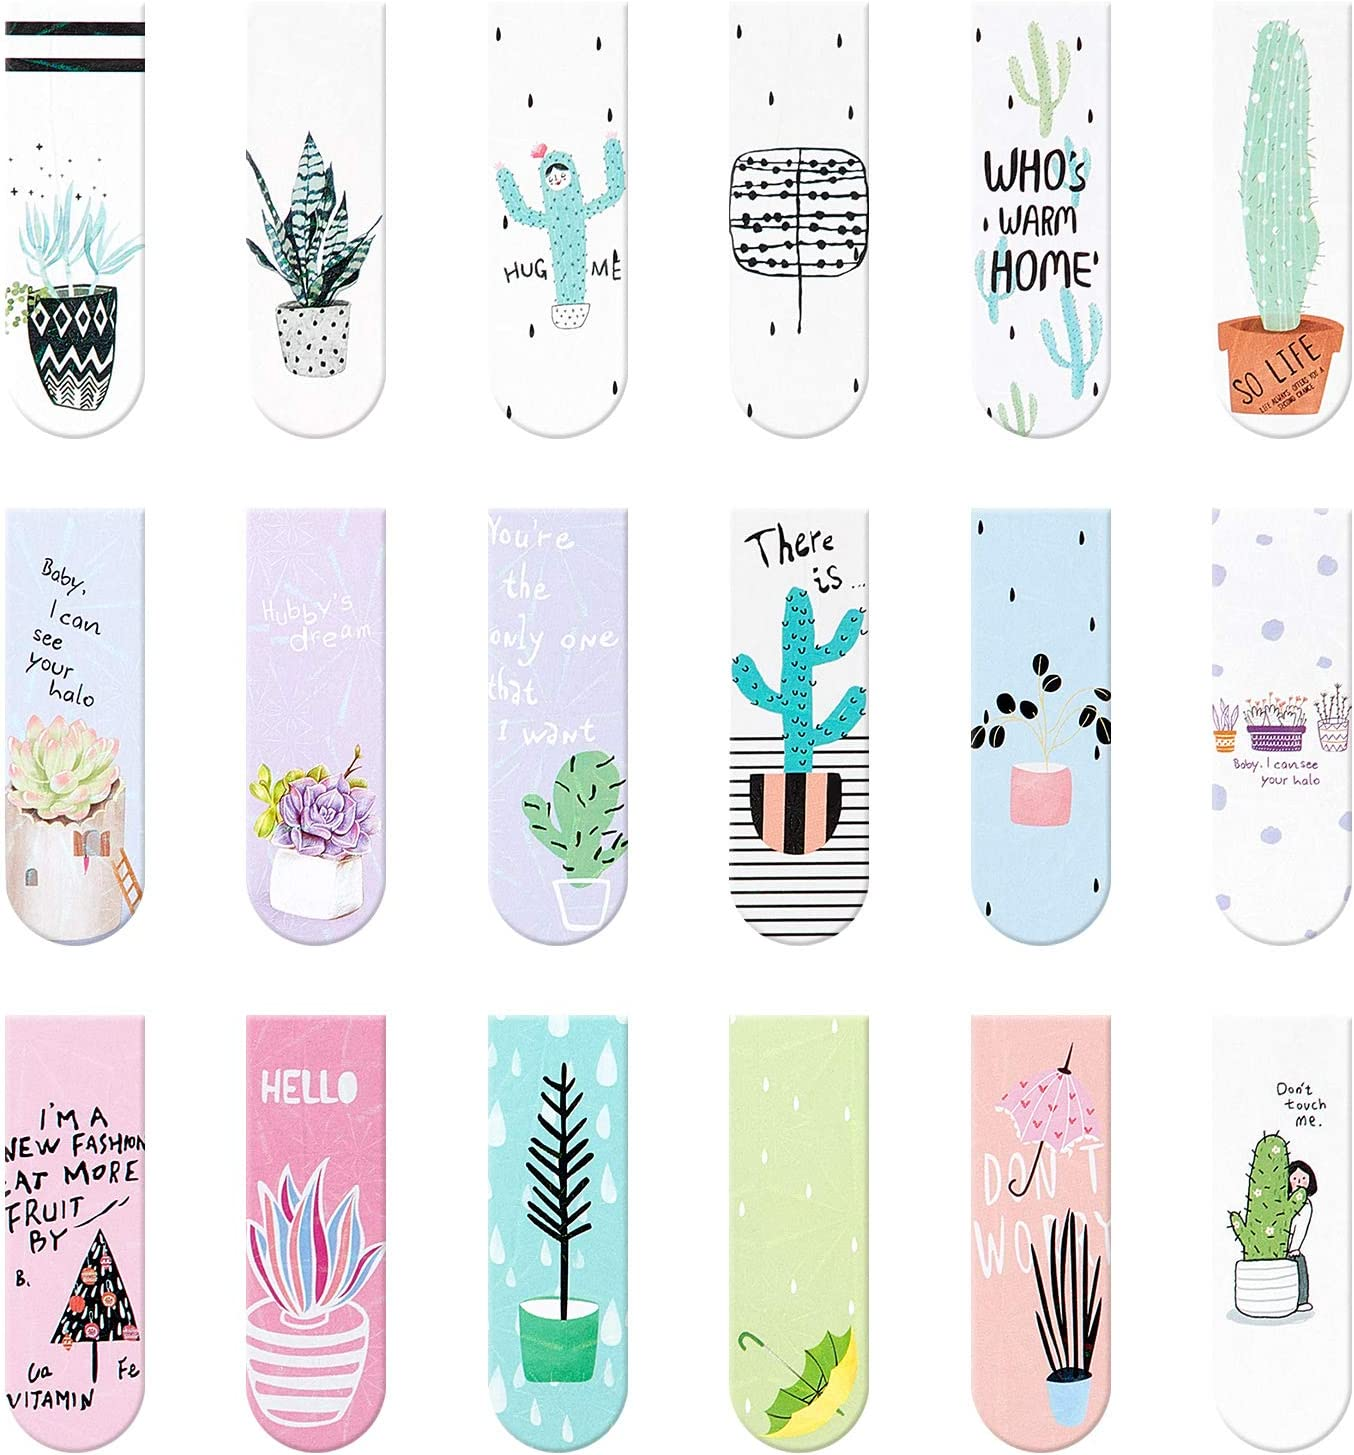 18 OFFicial site Pieces Magnet Magnetic Bookmarks Page Pag Cute Las Vegas Mall Markers